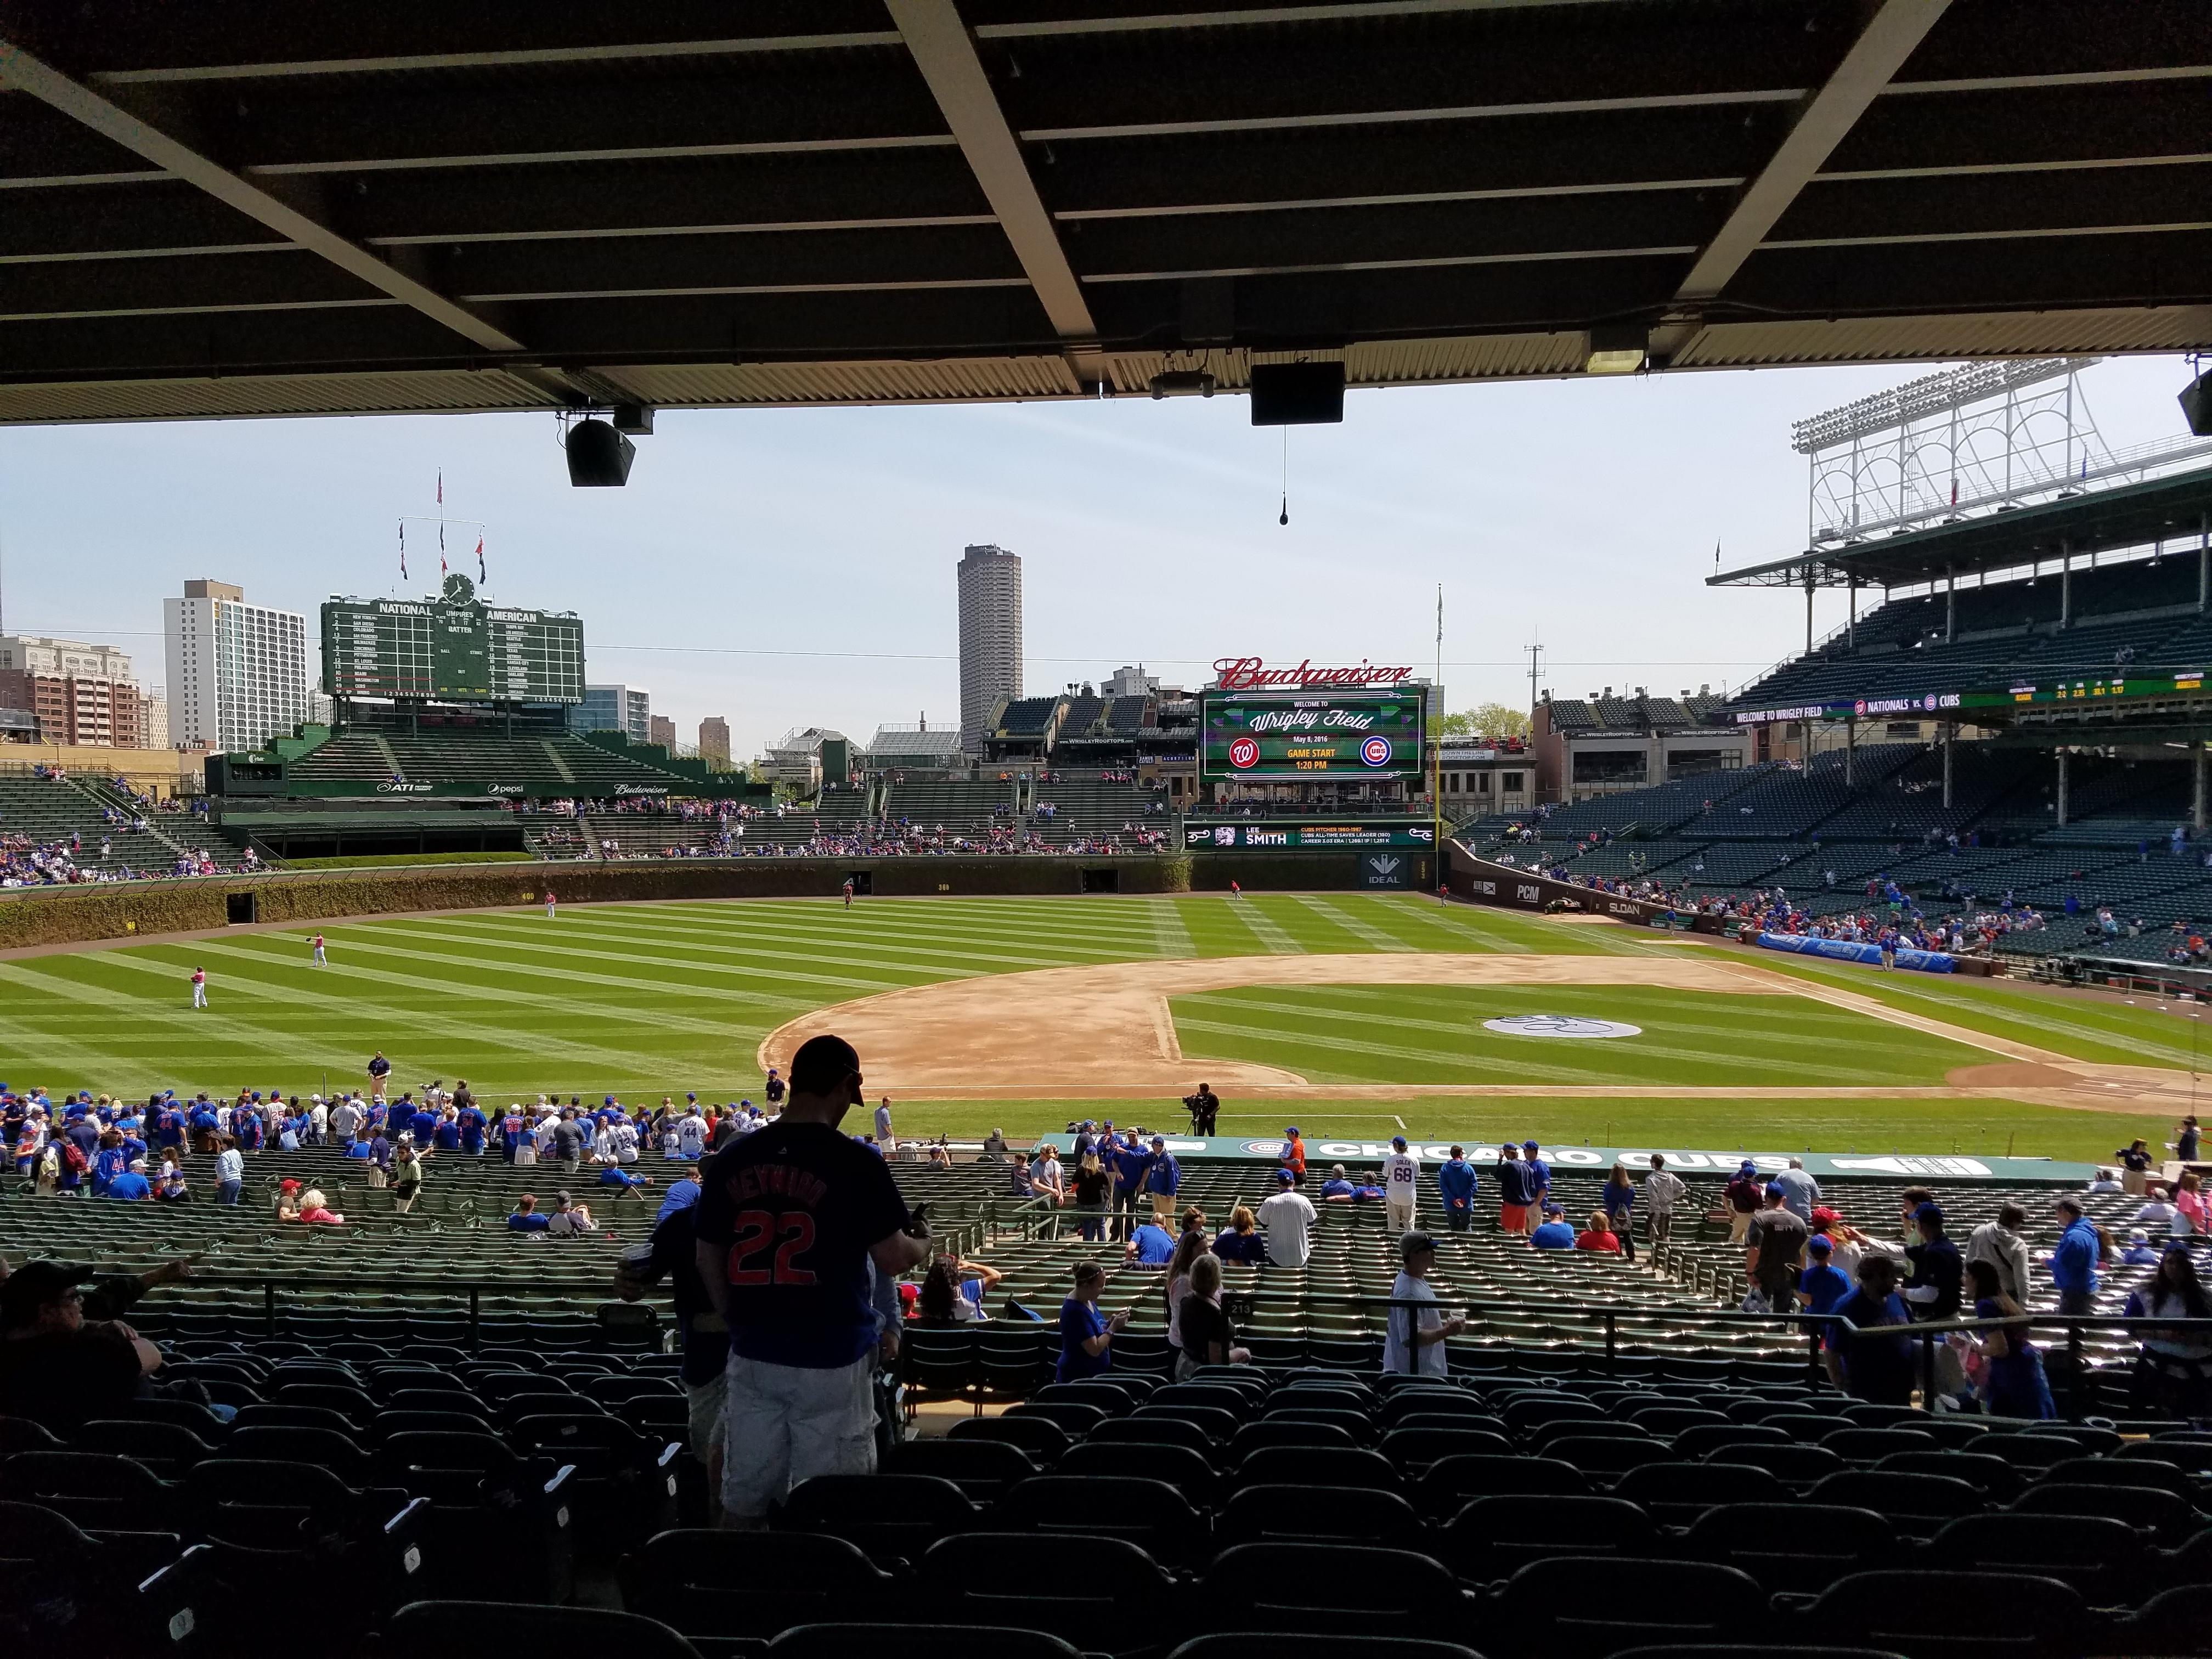 Wrigley Field section 213 row Q3 seat 3 Chicago Cubs vs Washington